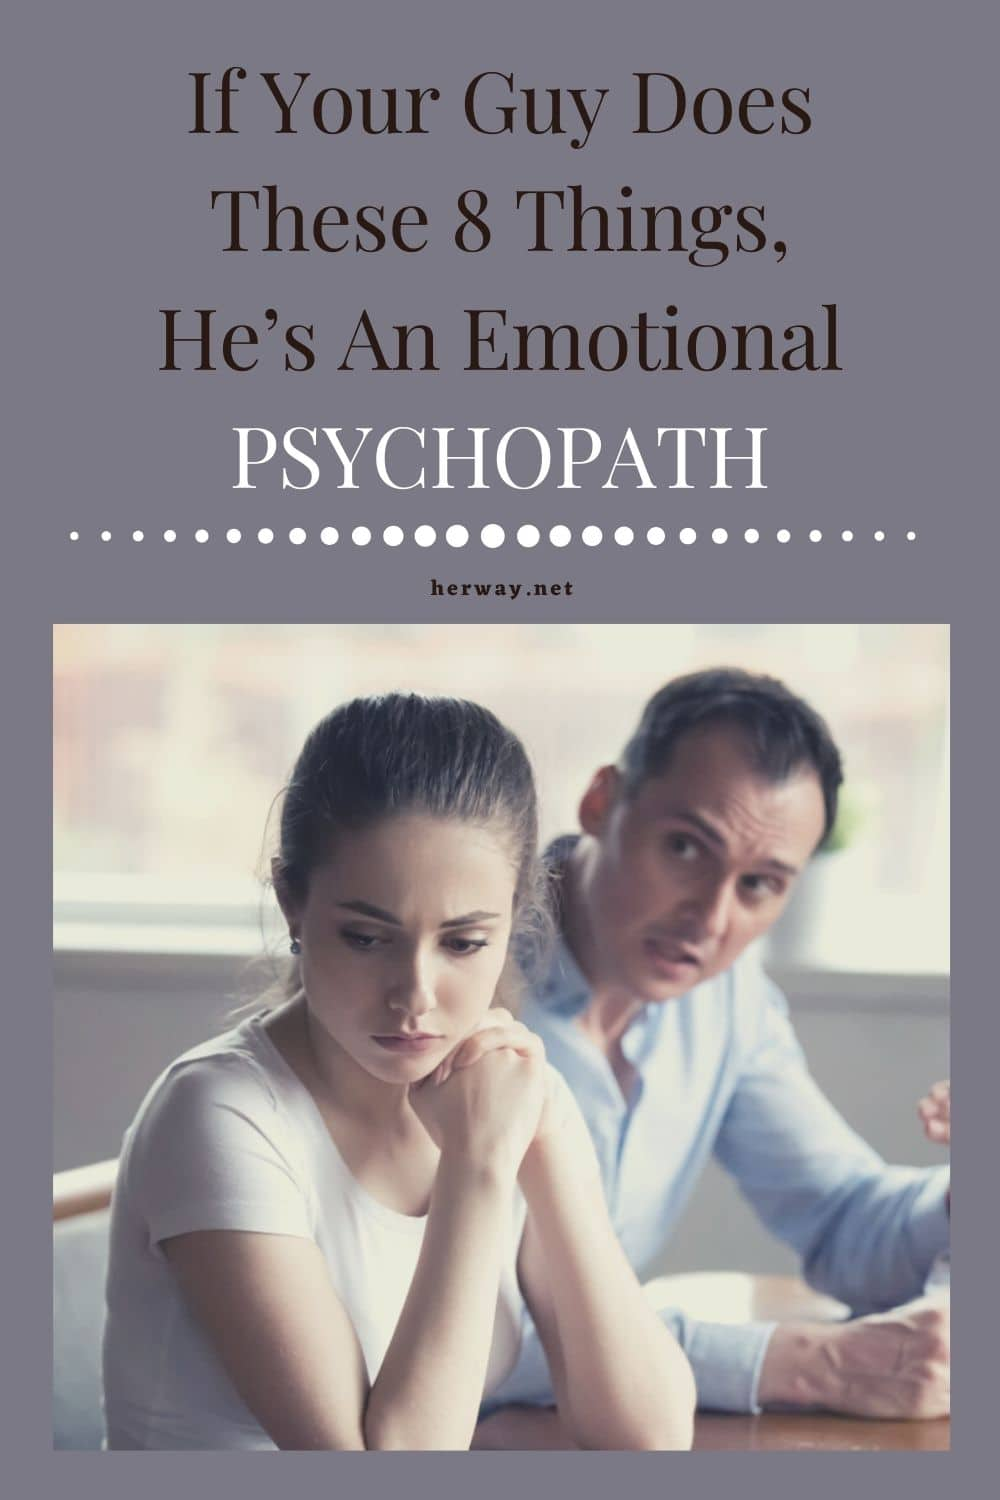 If Your Guy Does These 8 Things, He's An Emotional PSYCHOPATH